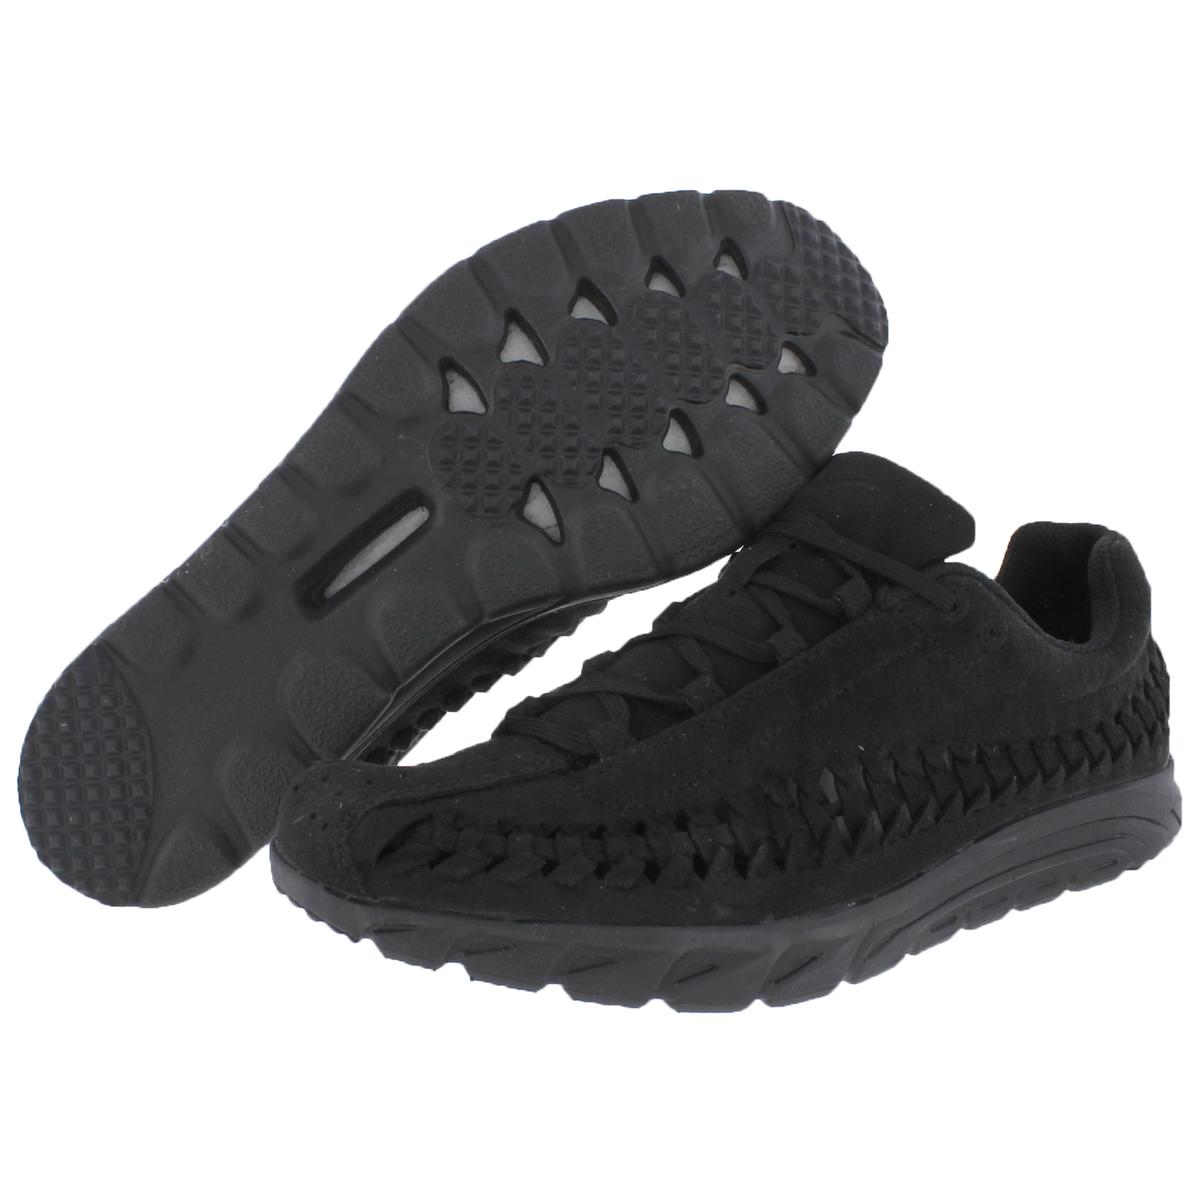 Nike-Mens-Mayfly-Woven-Suede-Woven-Training-Fashion-Sneakers-Shoes-BHFO-2898 thumbnail 5